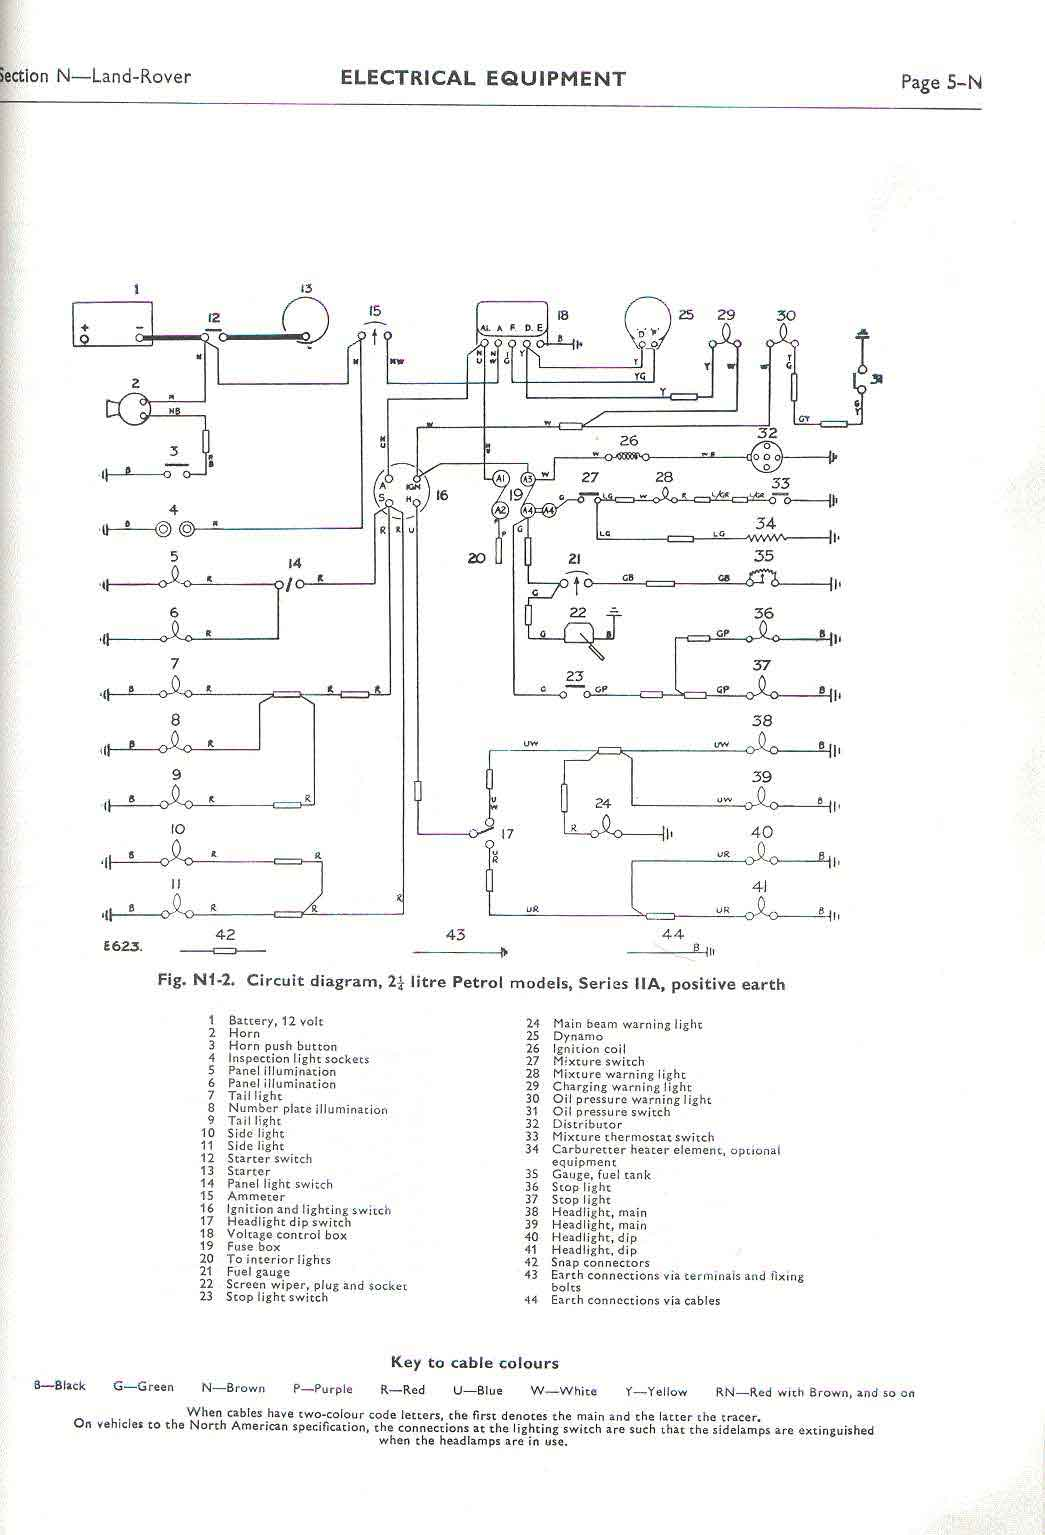 SIIA+VE iib dash wiring photo's 900 club forum,Land Rover Series 3 Dash Wiring Diagram